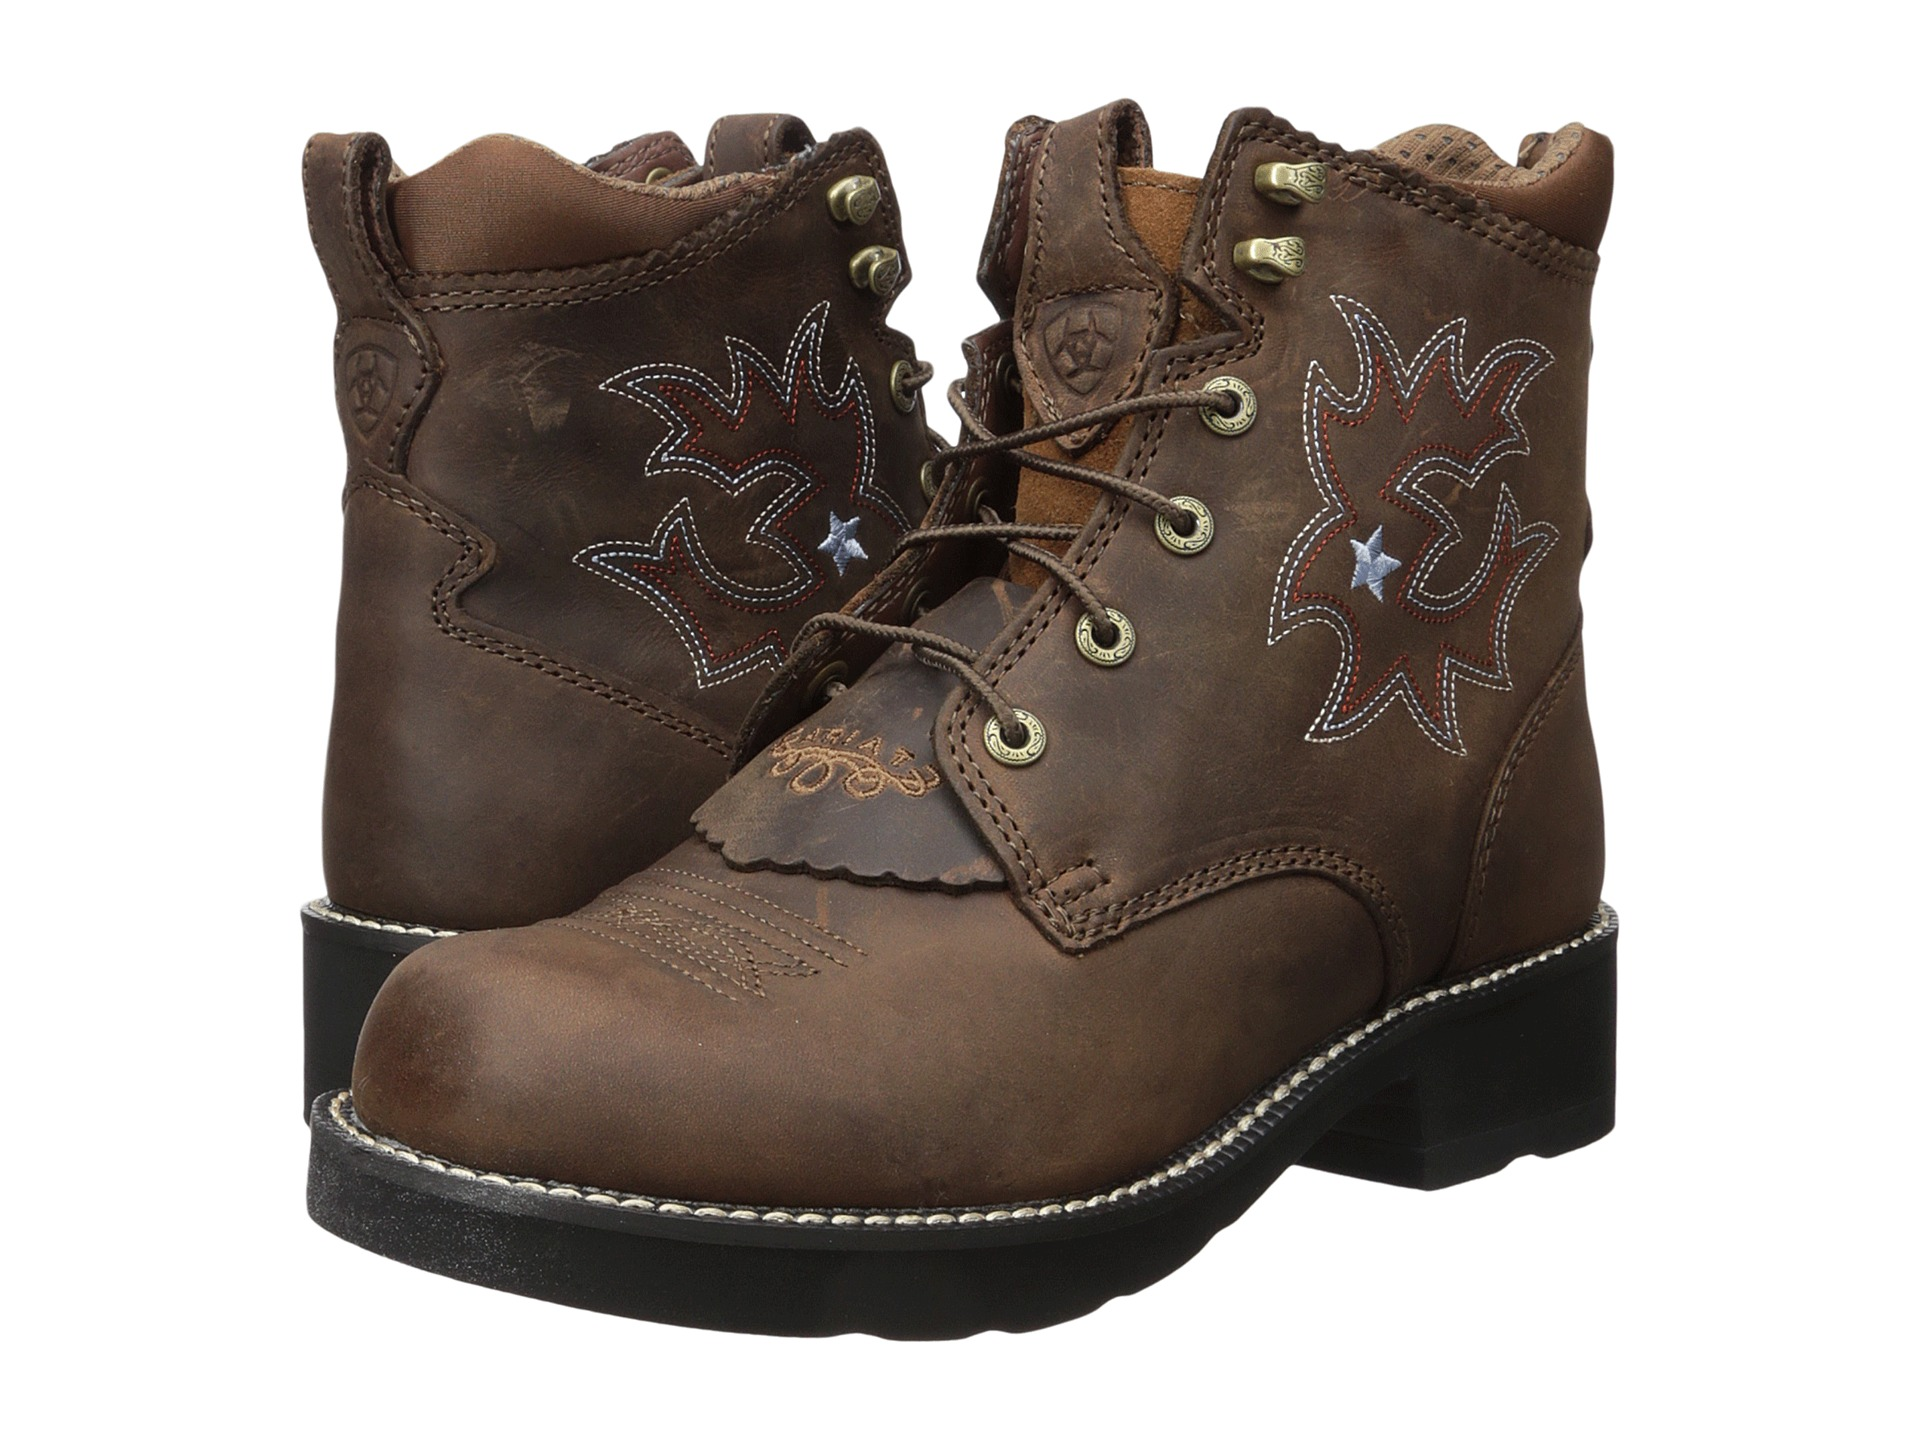 Ariat Probaby, Shoes, Women | Shipped Free at Zappos